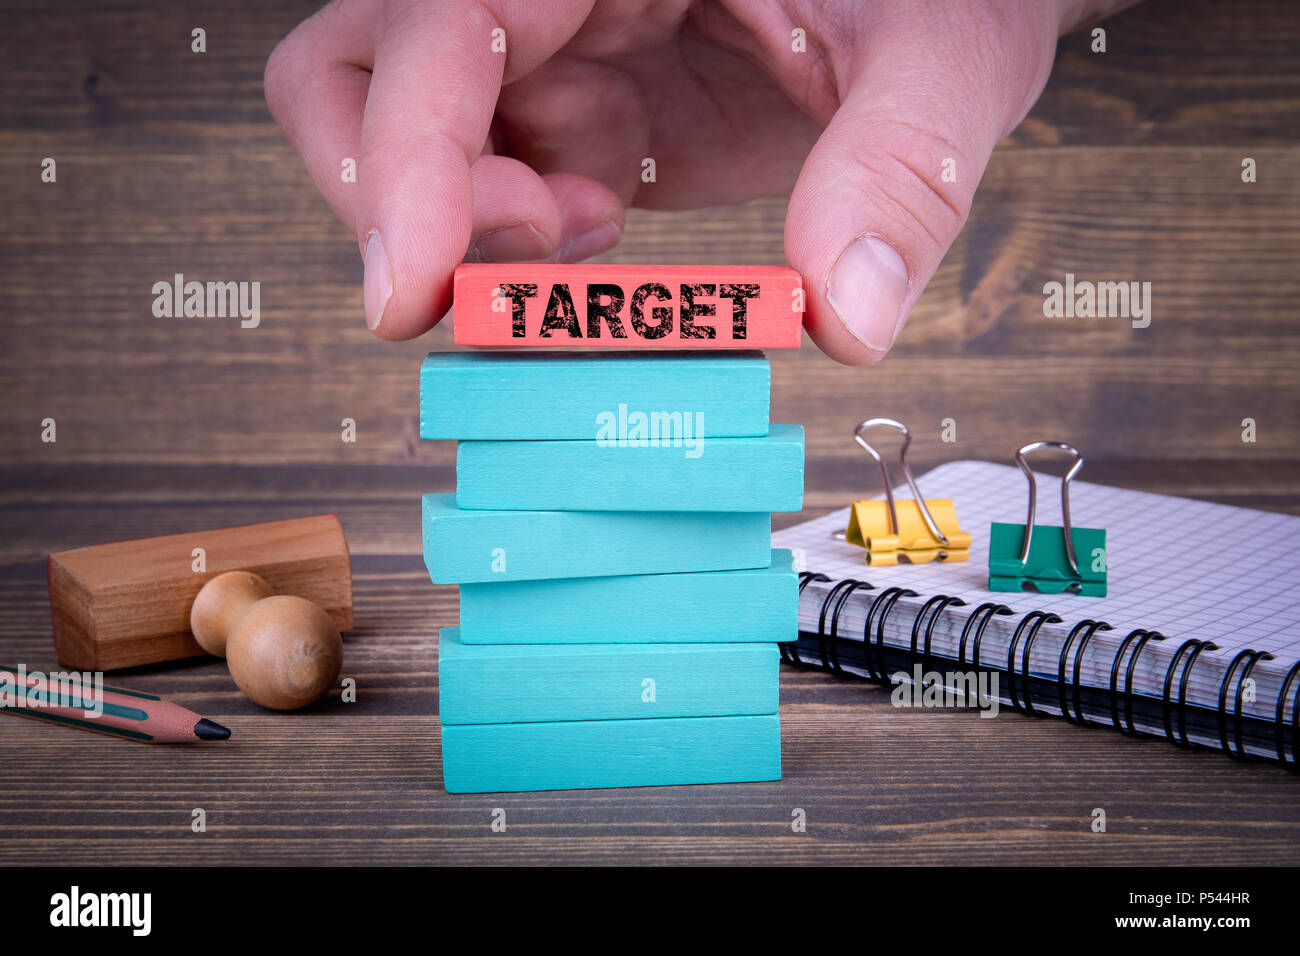 Target Business Concept - Stock Image